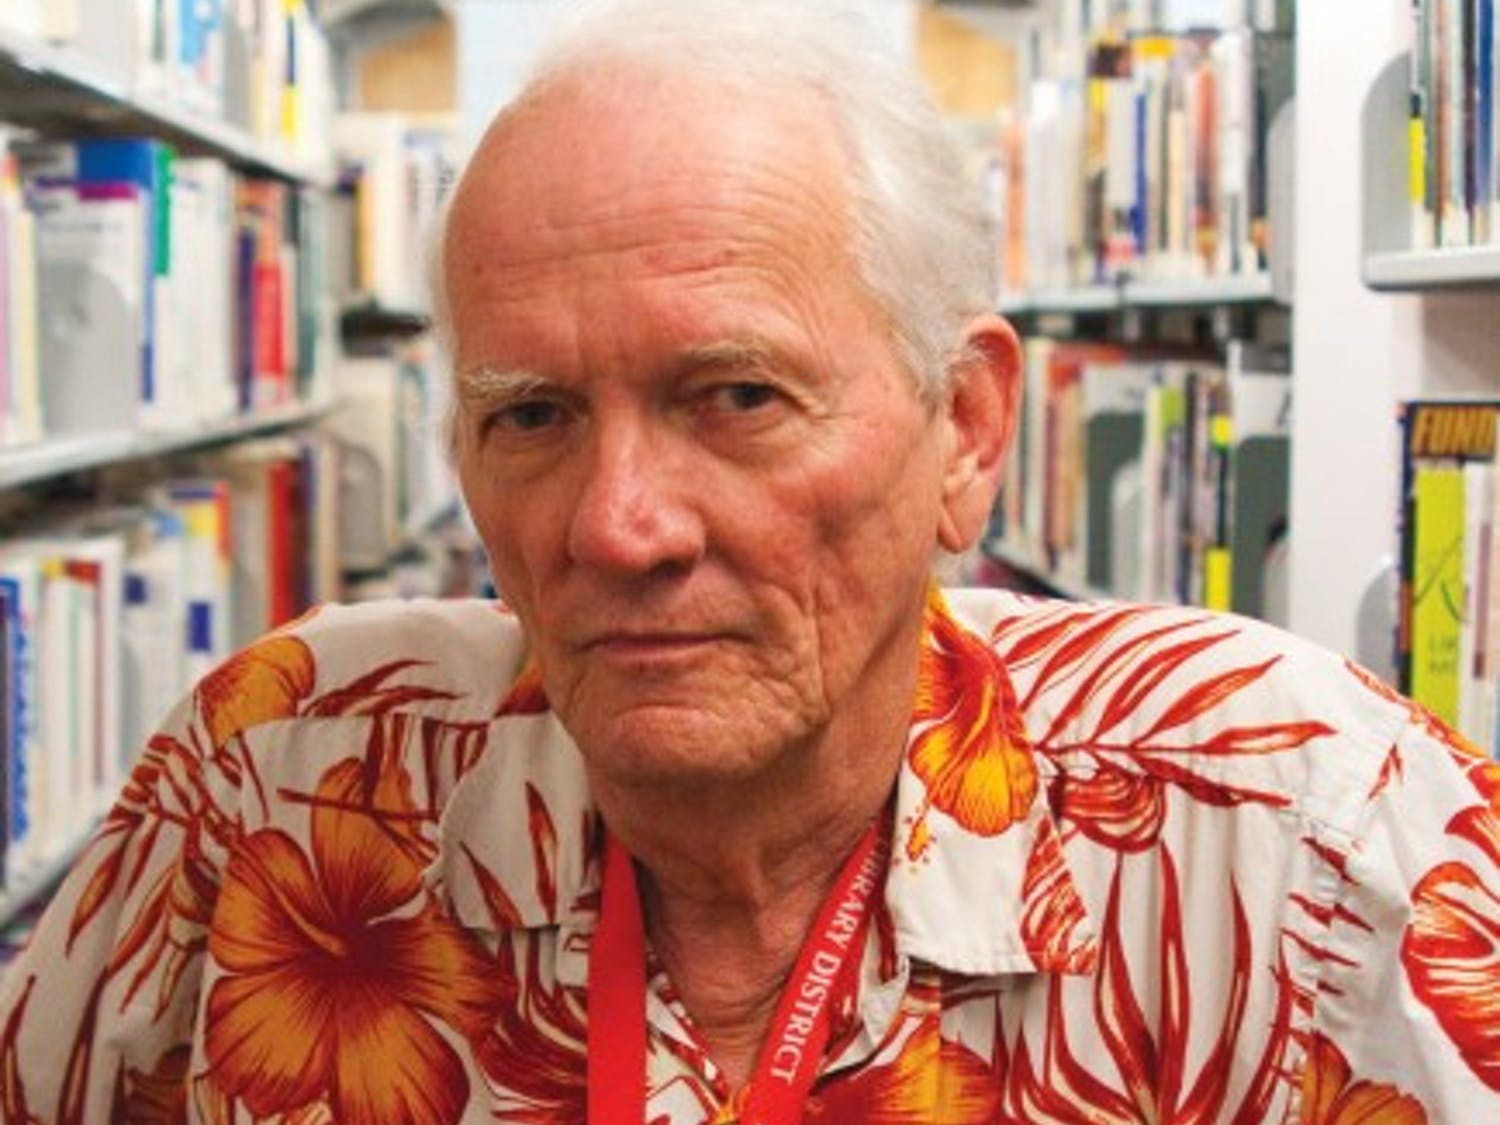 Al Martin, 69, is a librarian at Alachua County Tower Road Branch Library. Martin was one of the eight people chosen to receive a Carol Combs Hole Award for his work with non-native English speakers.